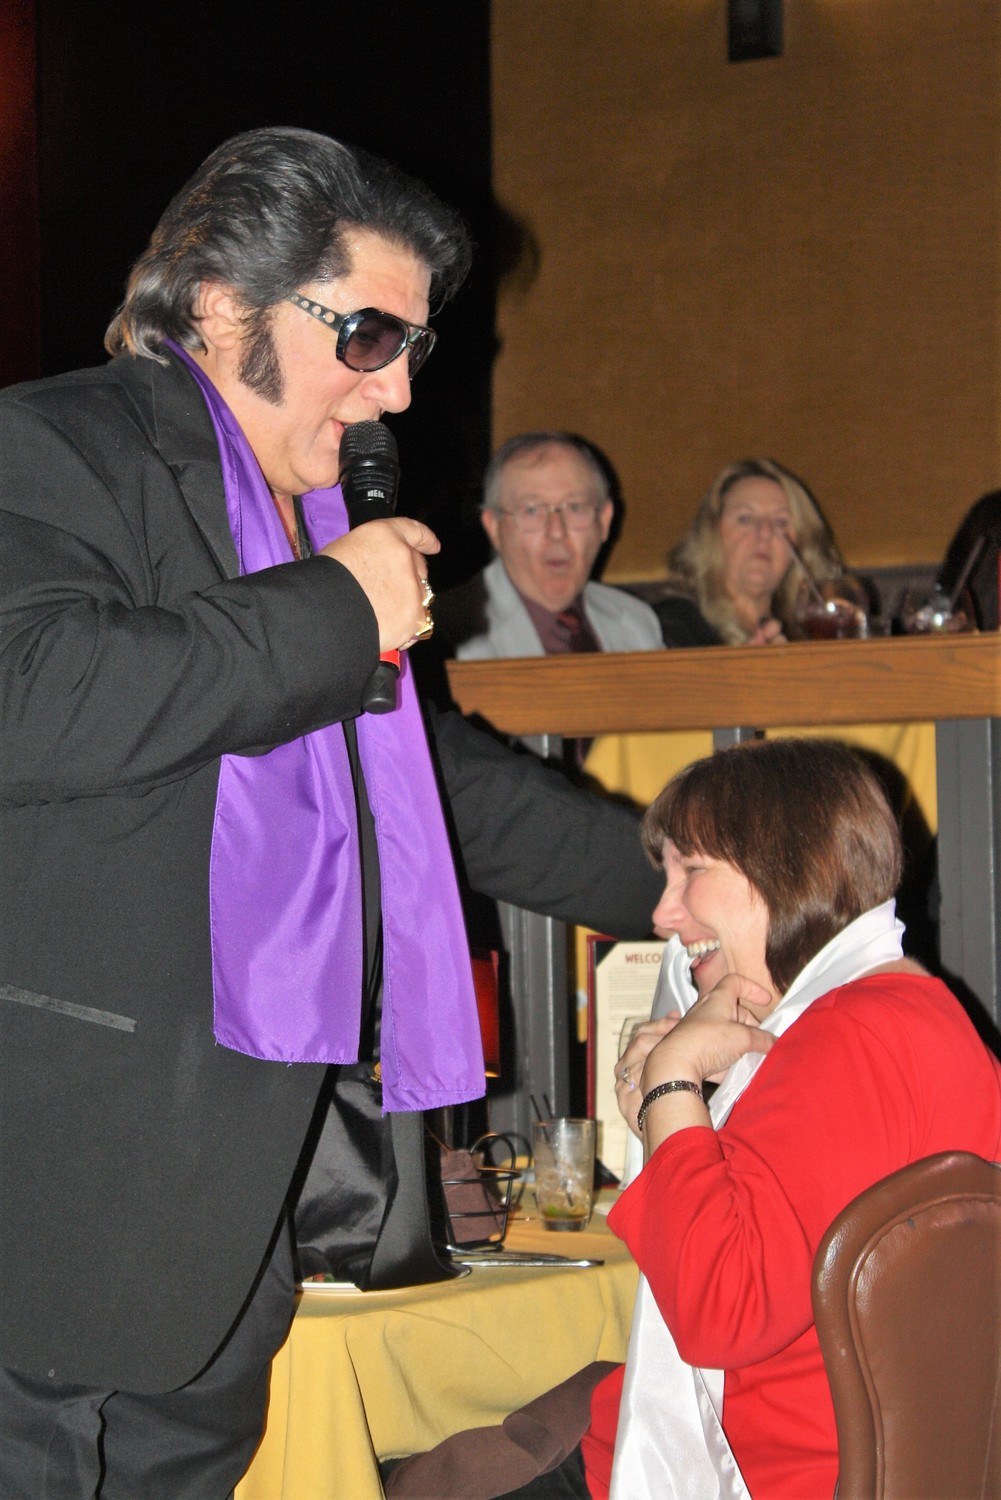 Elvis Presley (portrayed by Rick Marino) works the crowd, bestowing an audience member with a scarf.